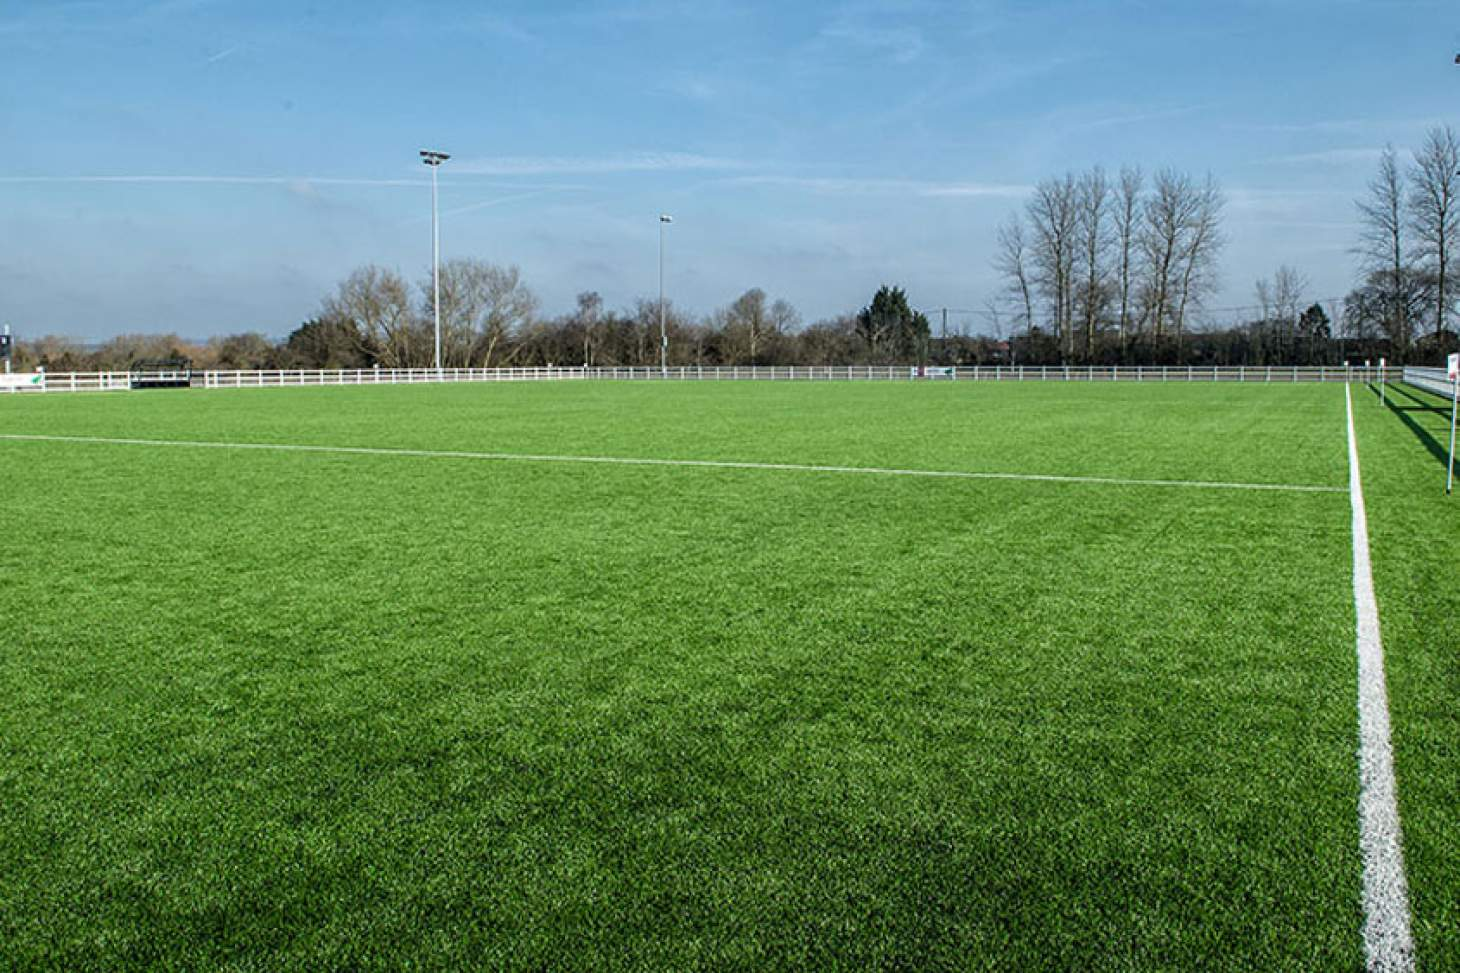 PlayFootball Keighley 8 a side | 3G Astroturf football pitch